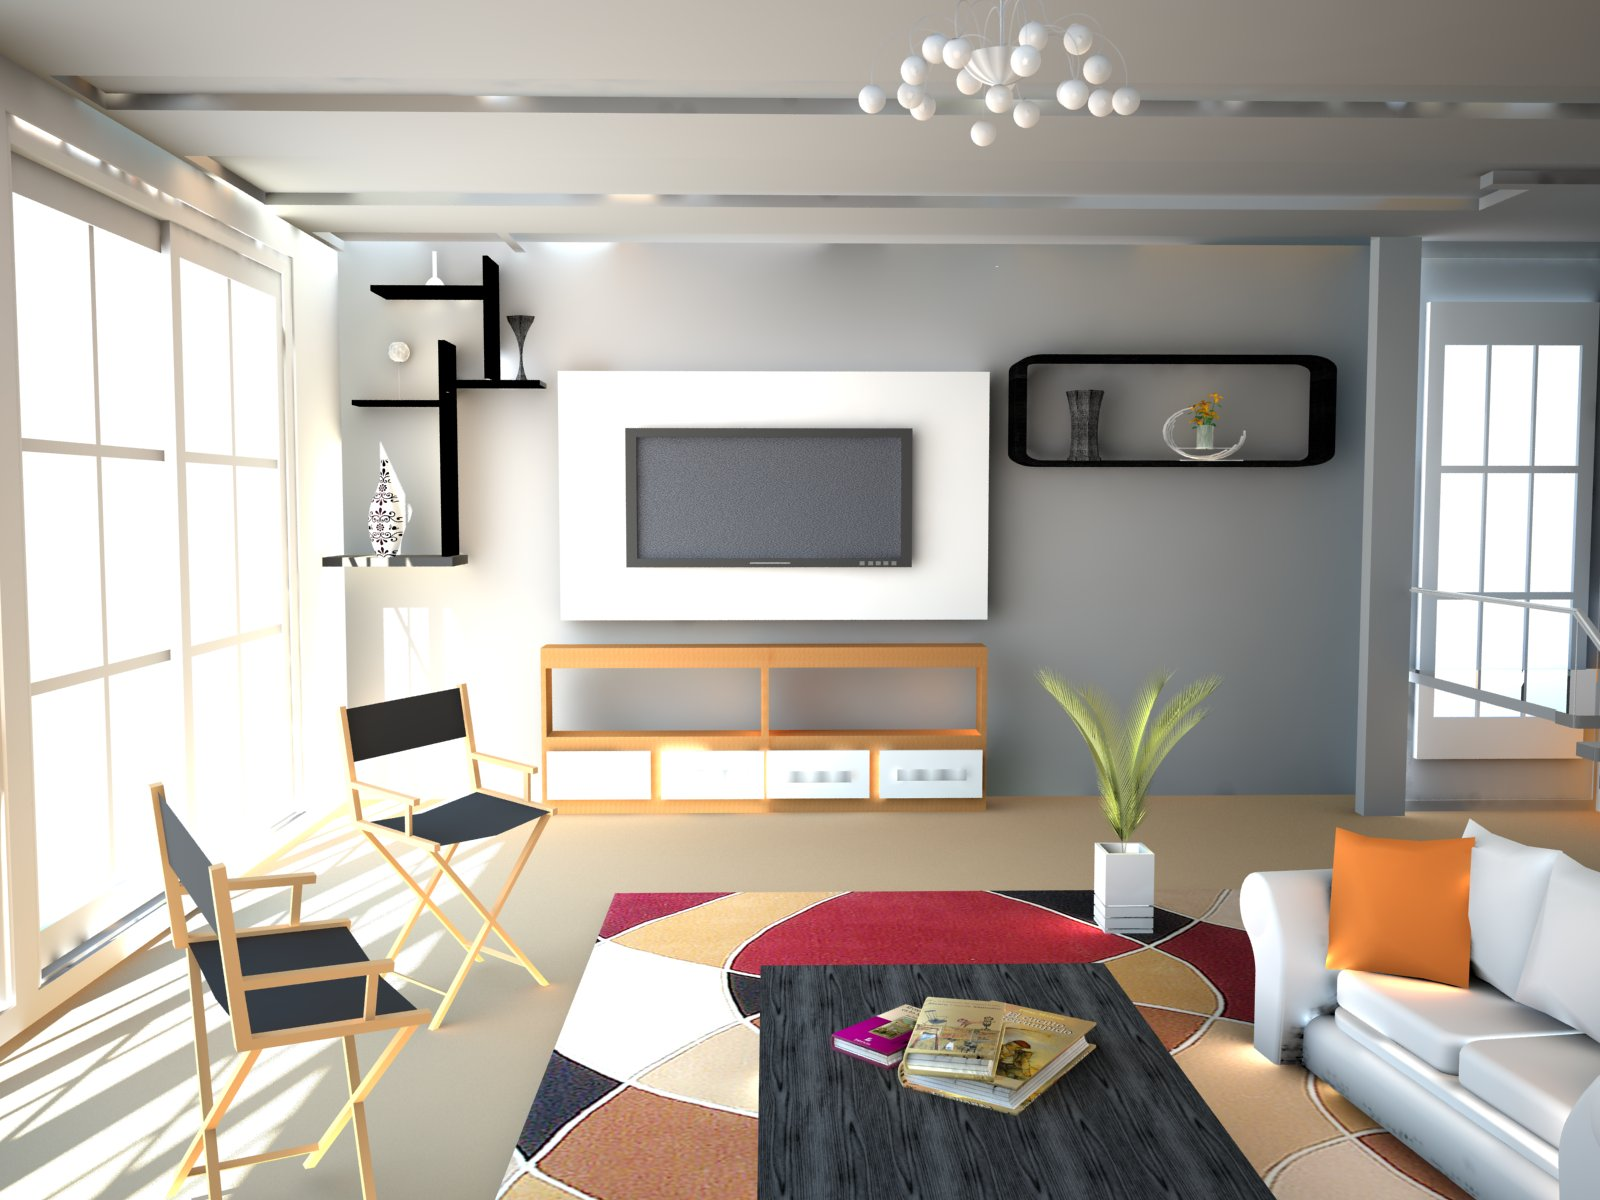 Designing a TV room